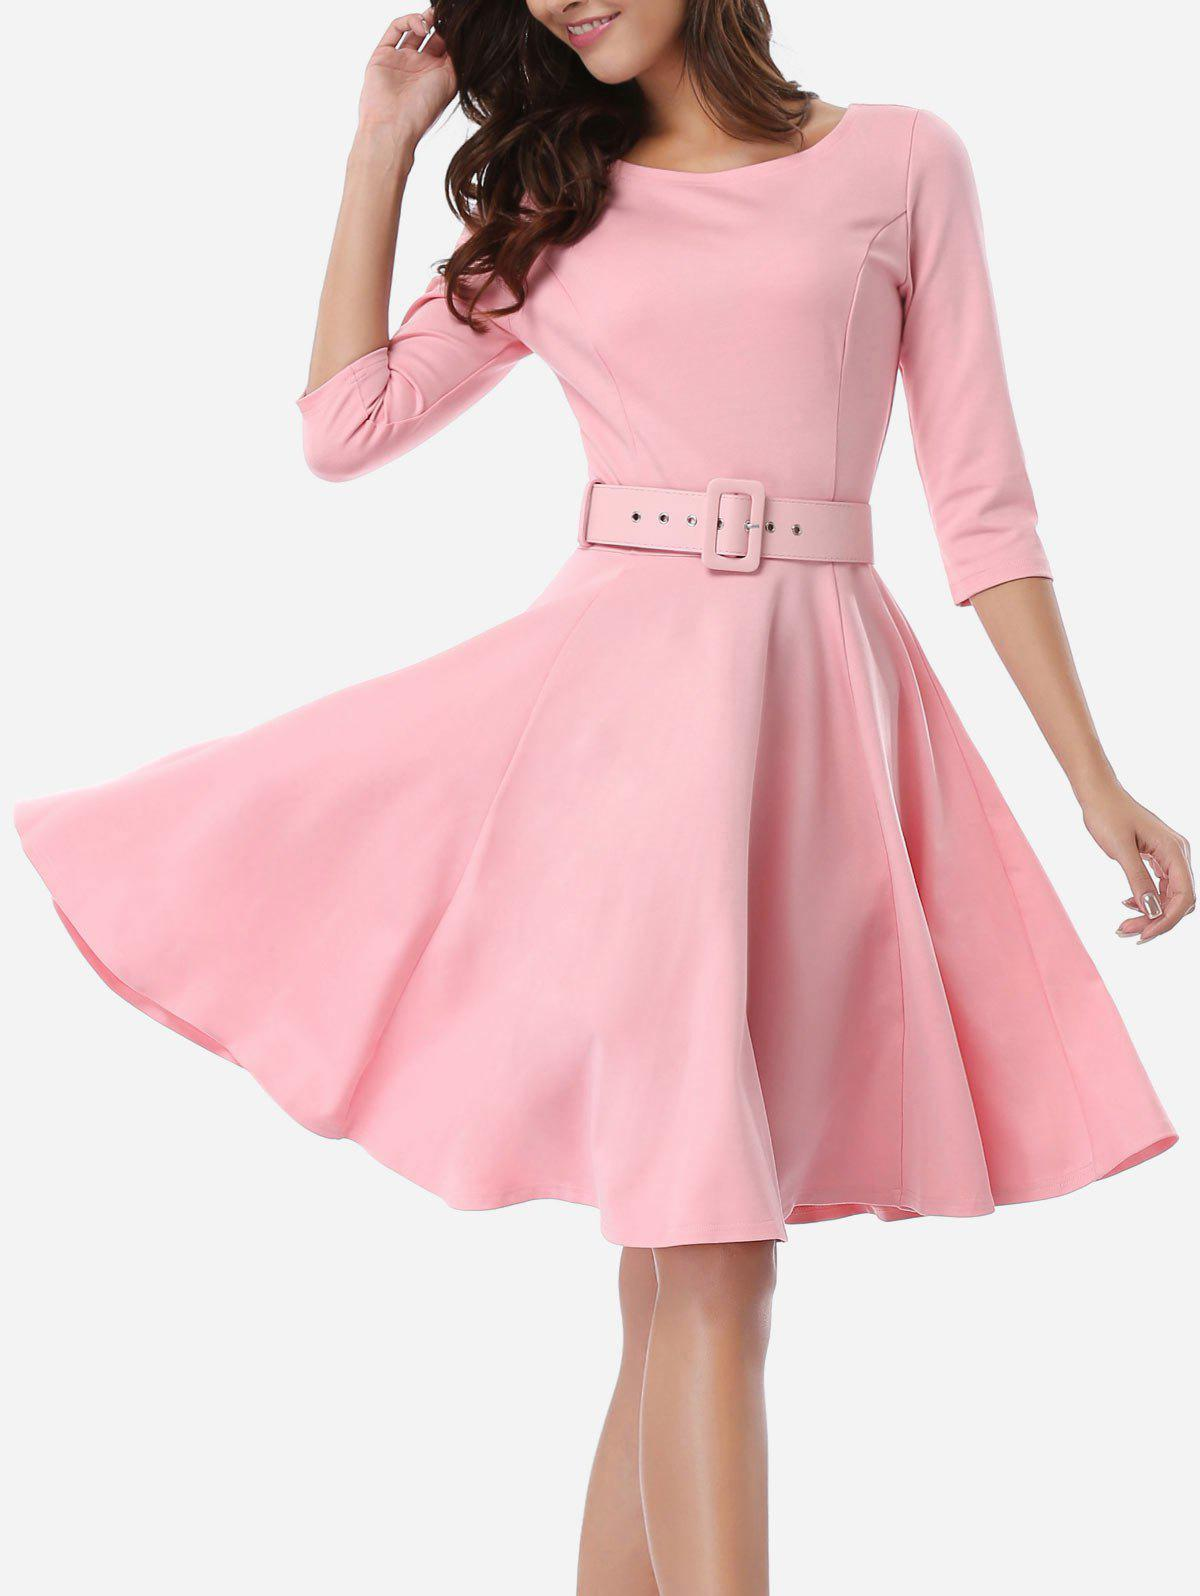 Office Belted Skater Going Out Swing DressWOMEN<br><br>Size: S; Color: PINK; Style: Vintage; Material: Cotton,Nylon,Spandex; Silhouette: A-Line; Dresses Length: Knee-Length; Neckline: Scoop Neck; Sleeve Length: 3/4 Length Sleeves; Pattern Type: Solid; With Belt: Yes; Season: Spring; Weight: 0.5700kg; Package Contents: 1 x Dress  1 x Belt;